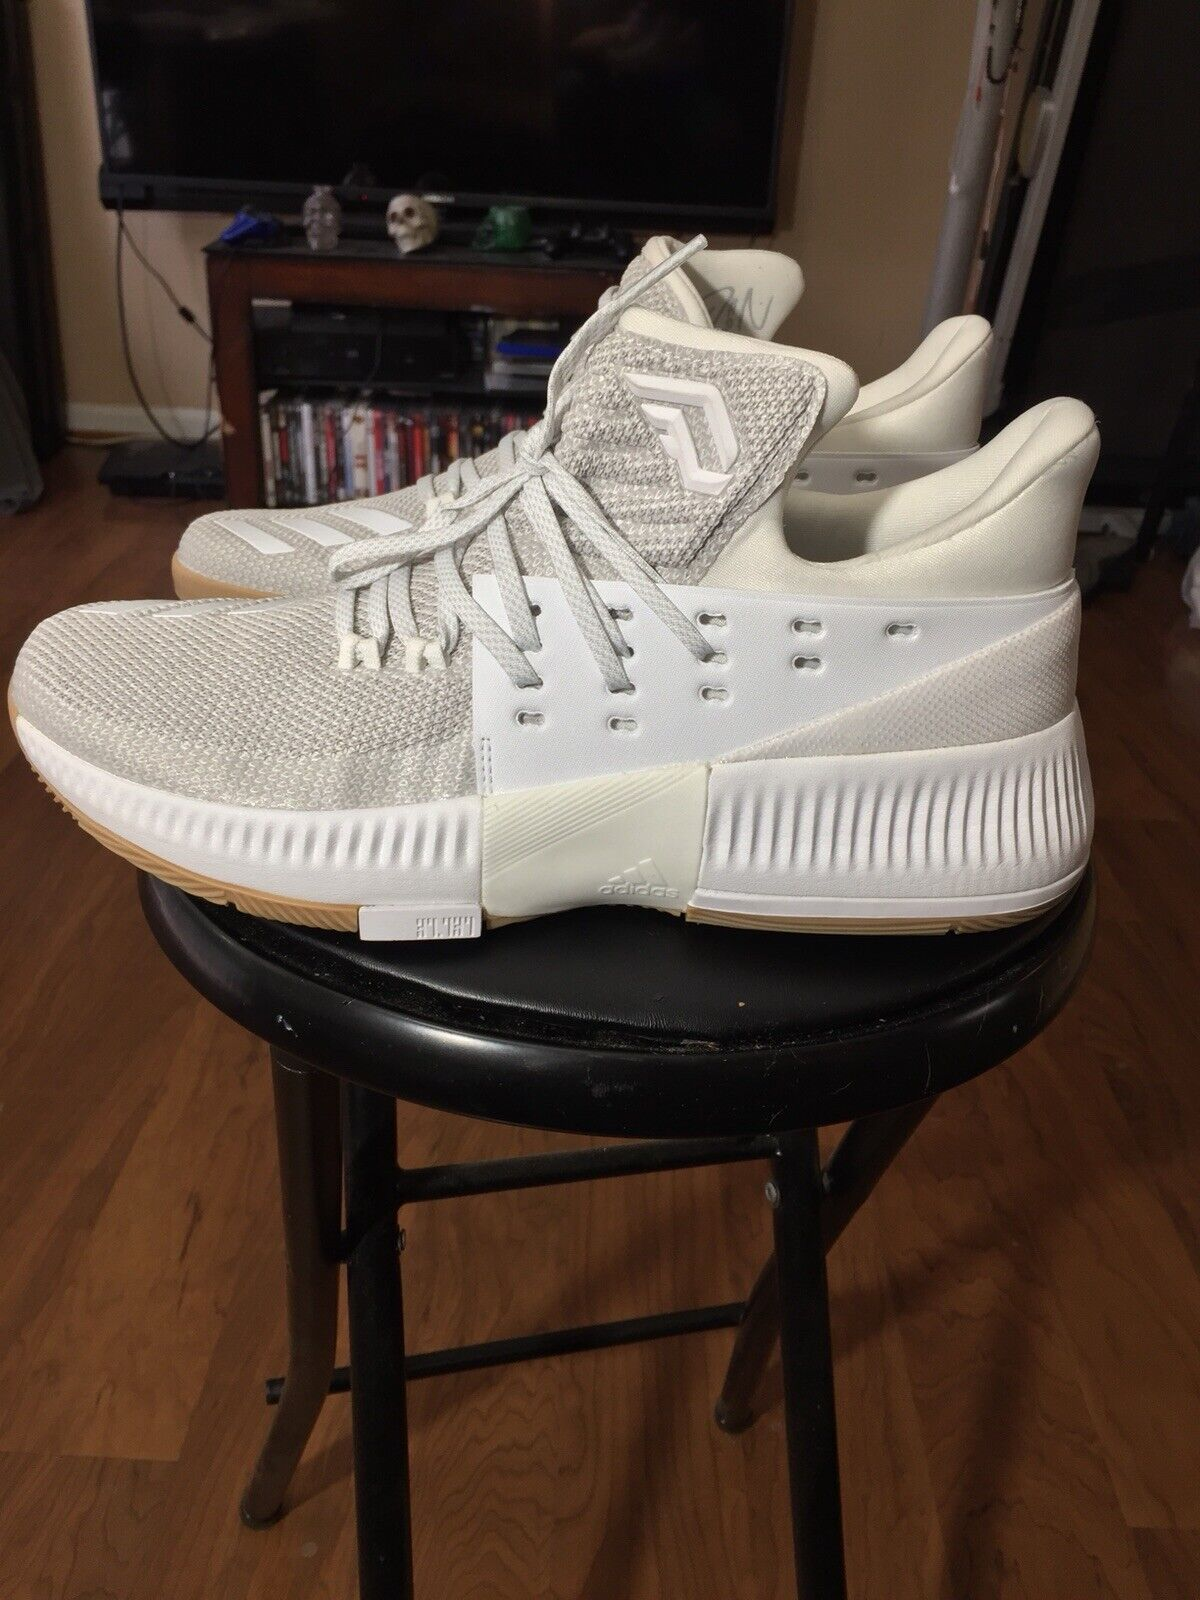 Adidas D Lillard 3 DAME Basketball shoes 2017 - Men's Size 9.5 BW0323